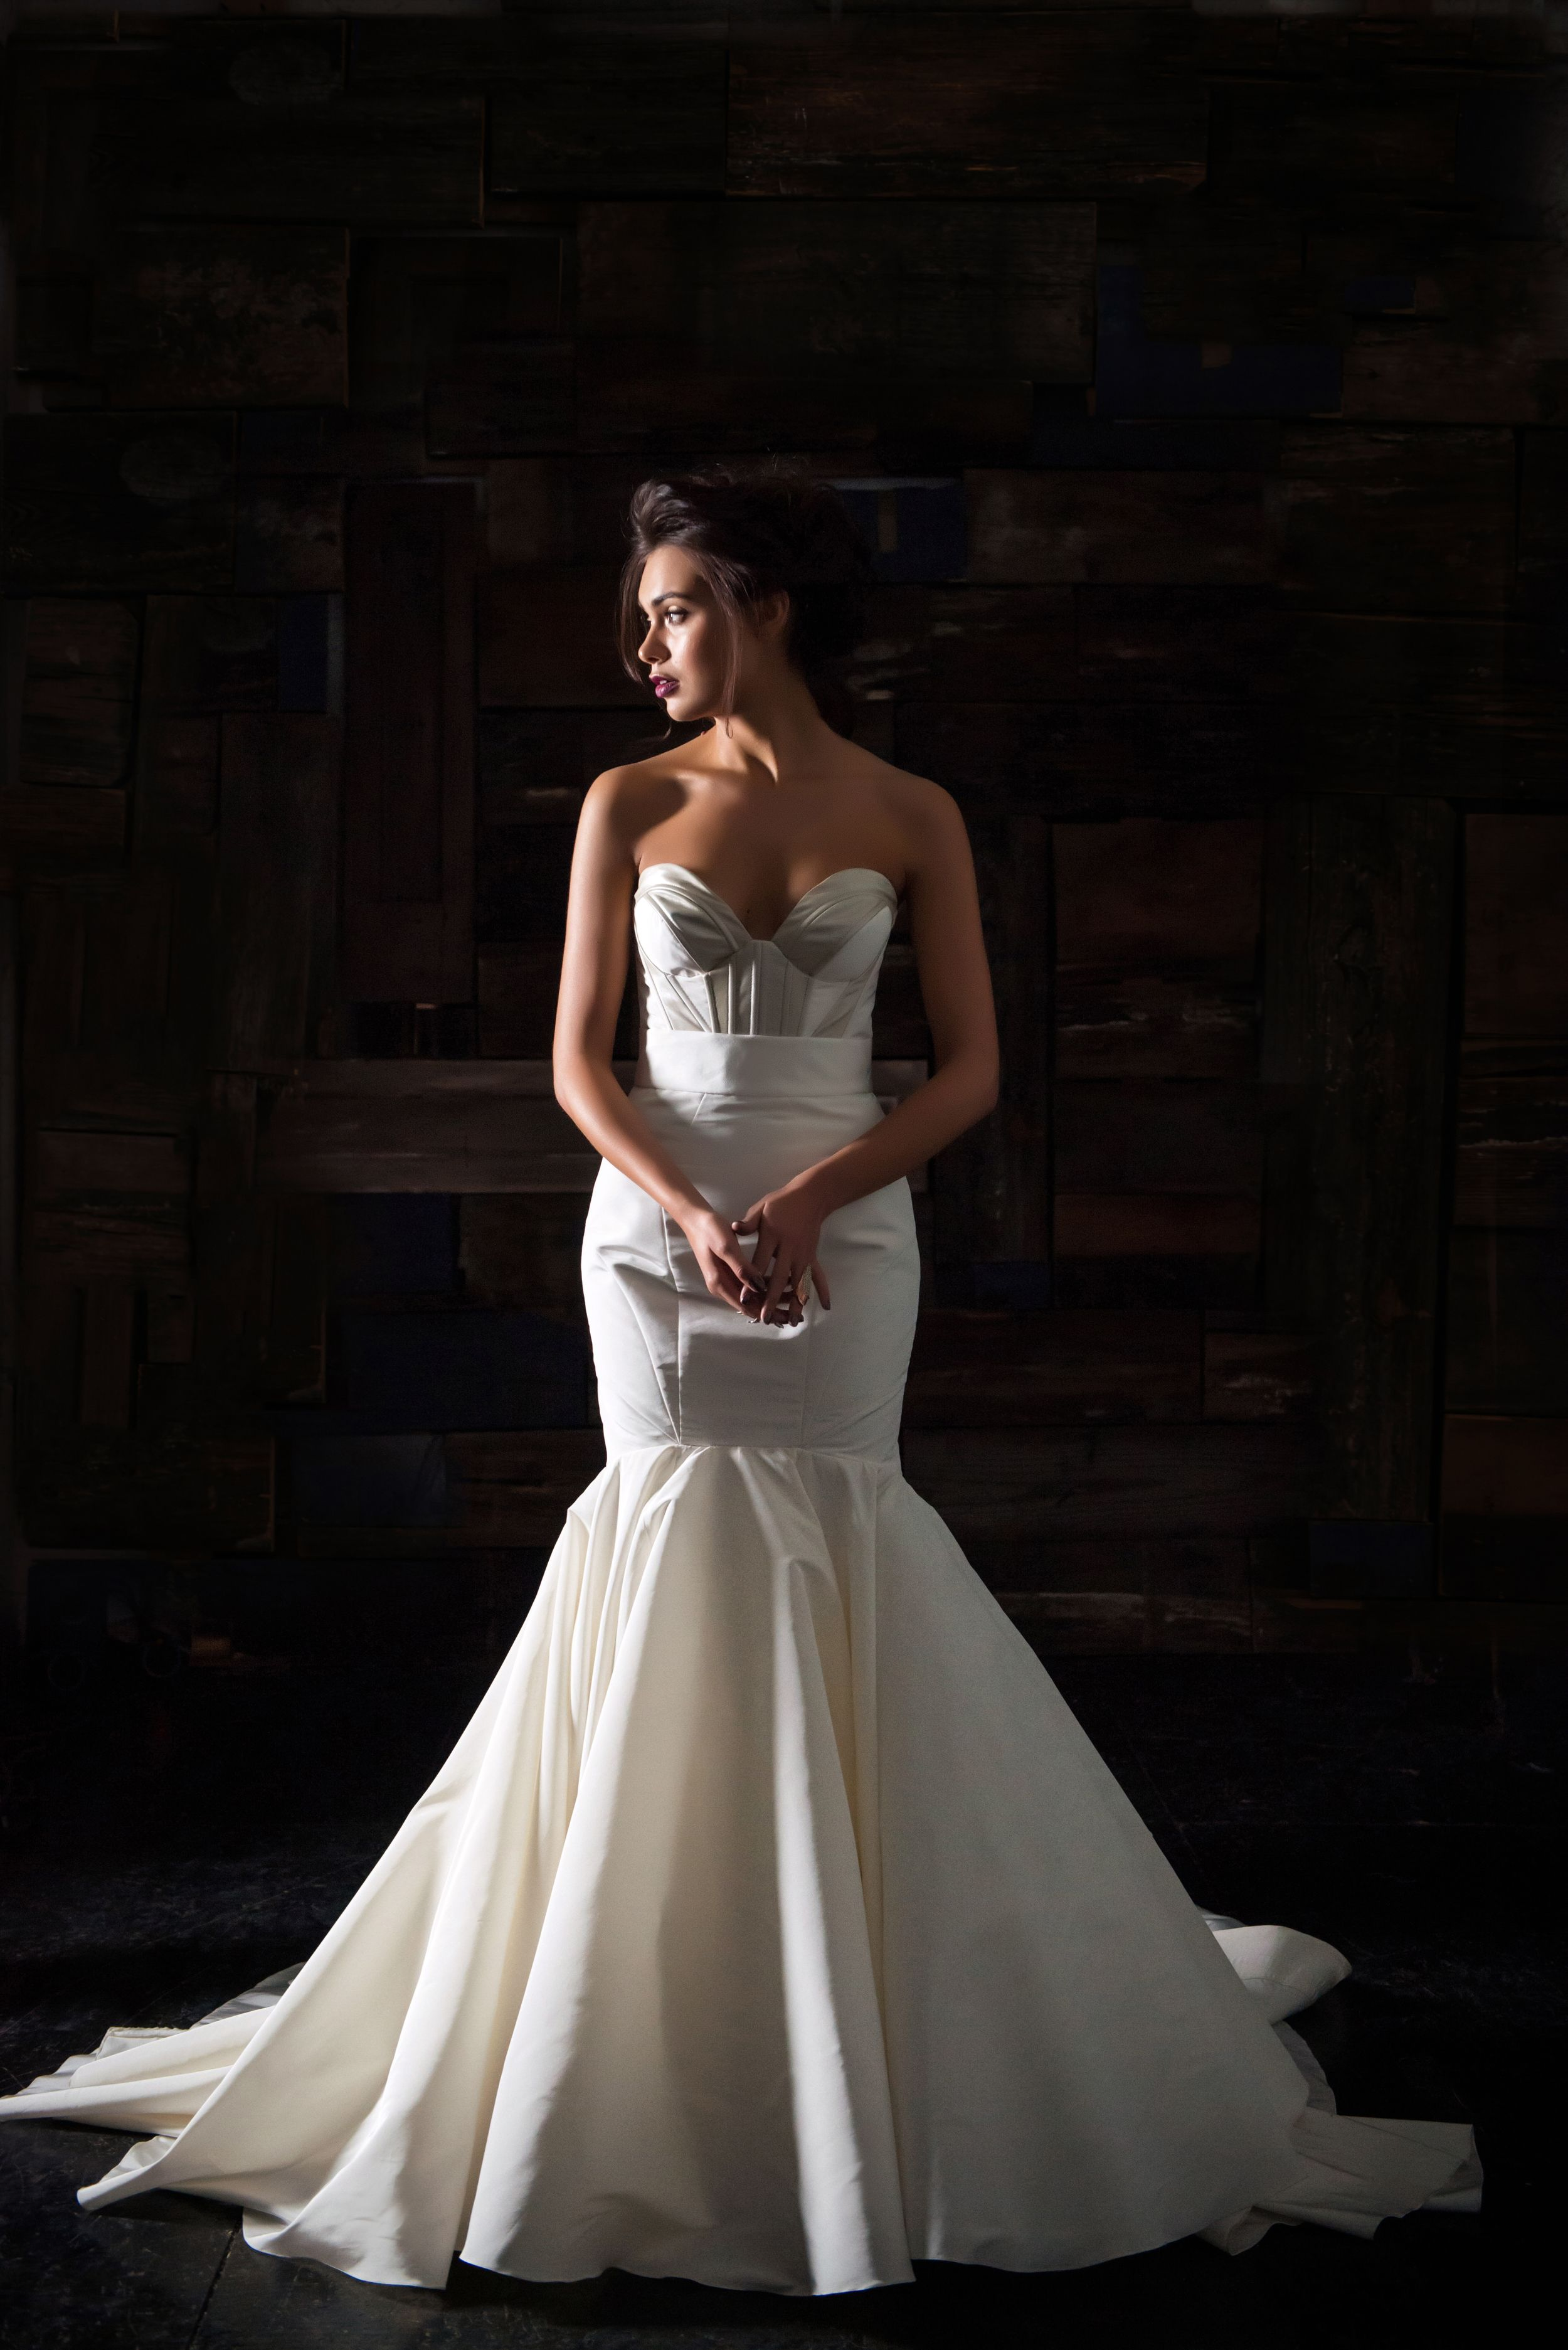 Leather wedding dress  Pin by Emily Fritz on Mrs  Pinterest  Wedding dress Weddings and